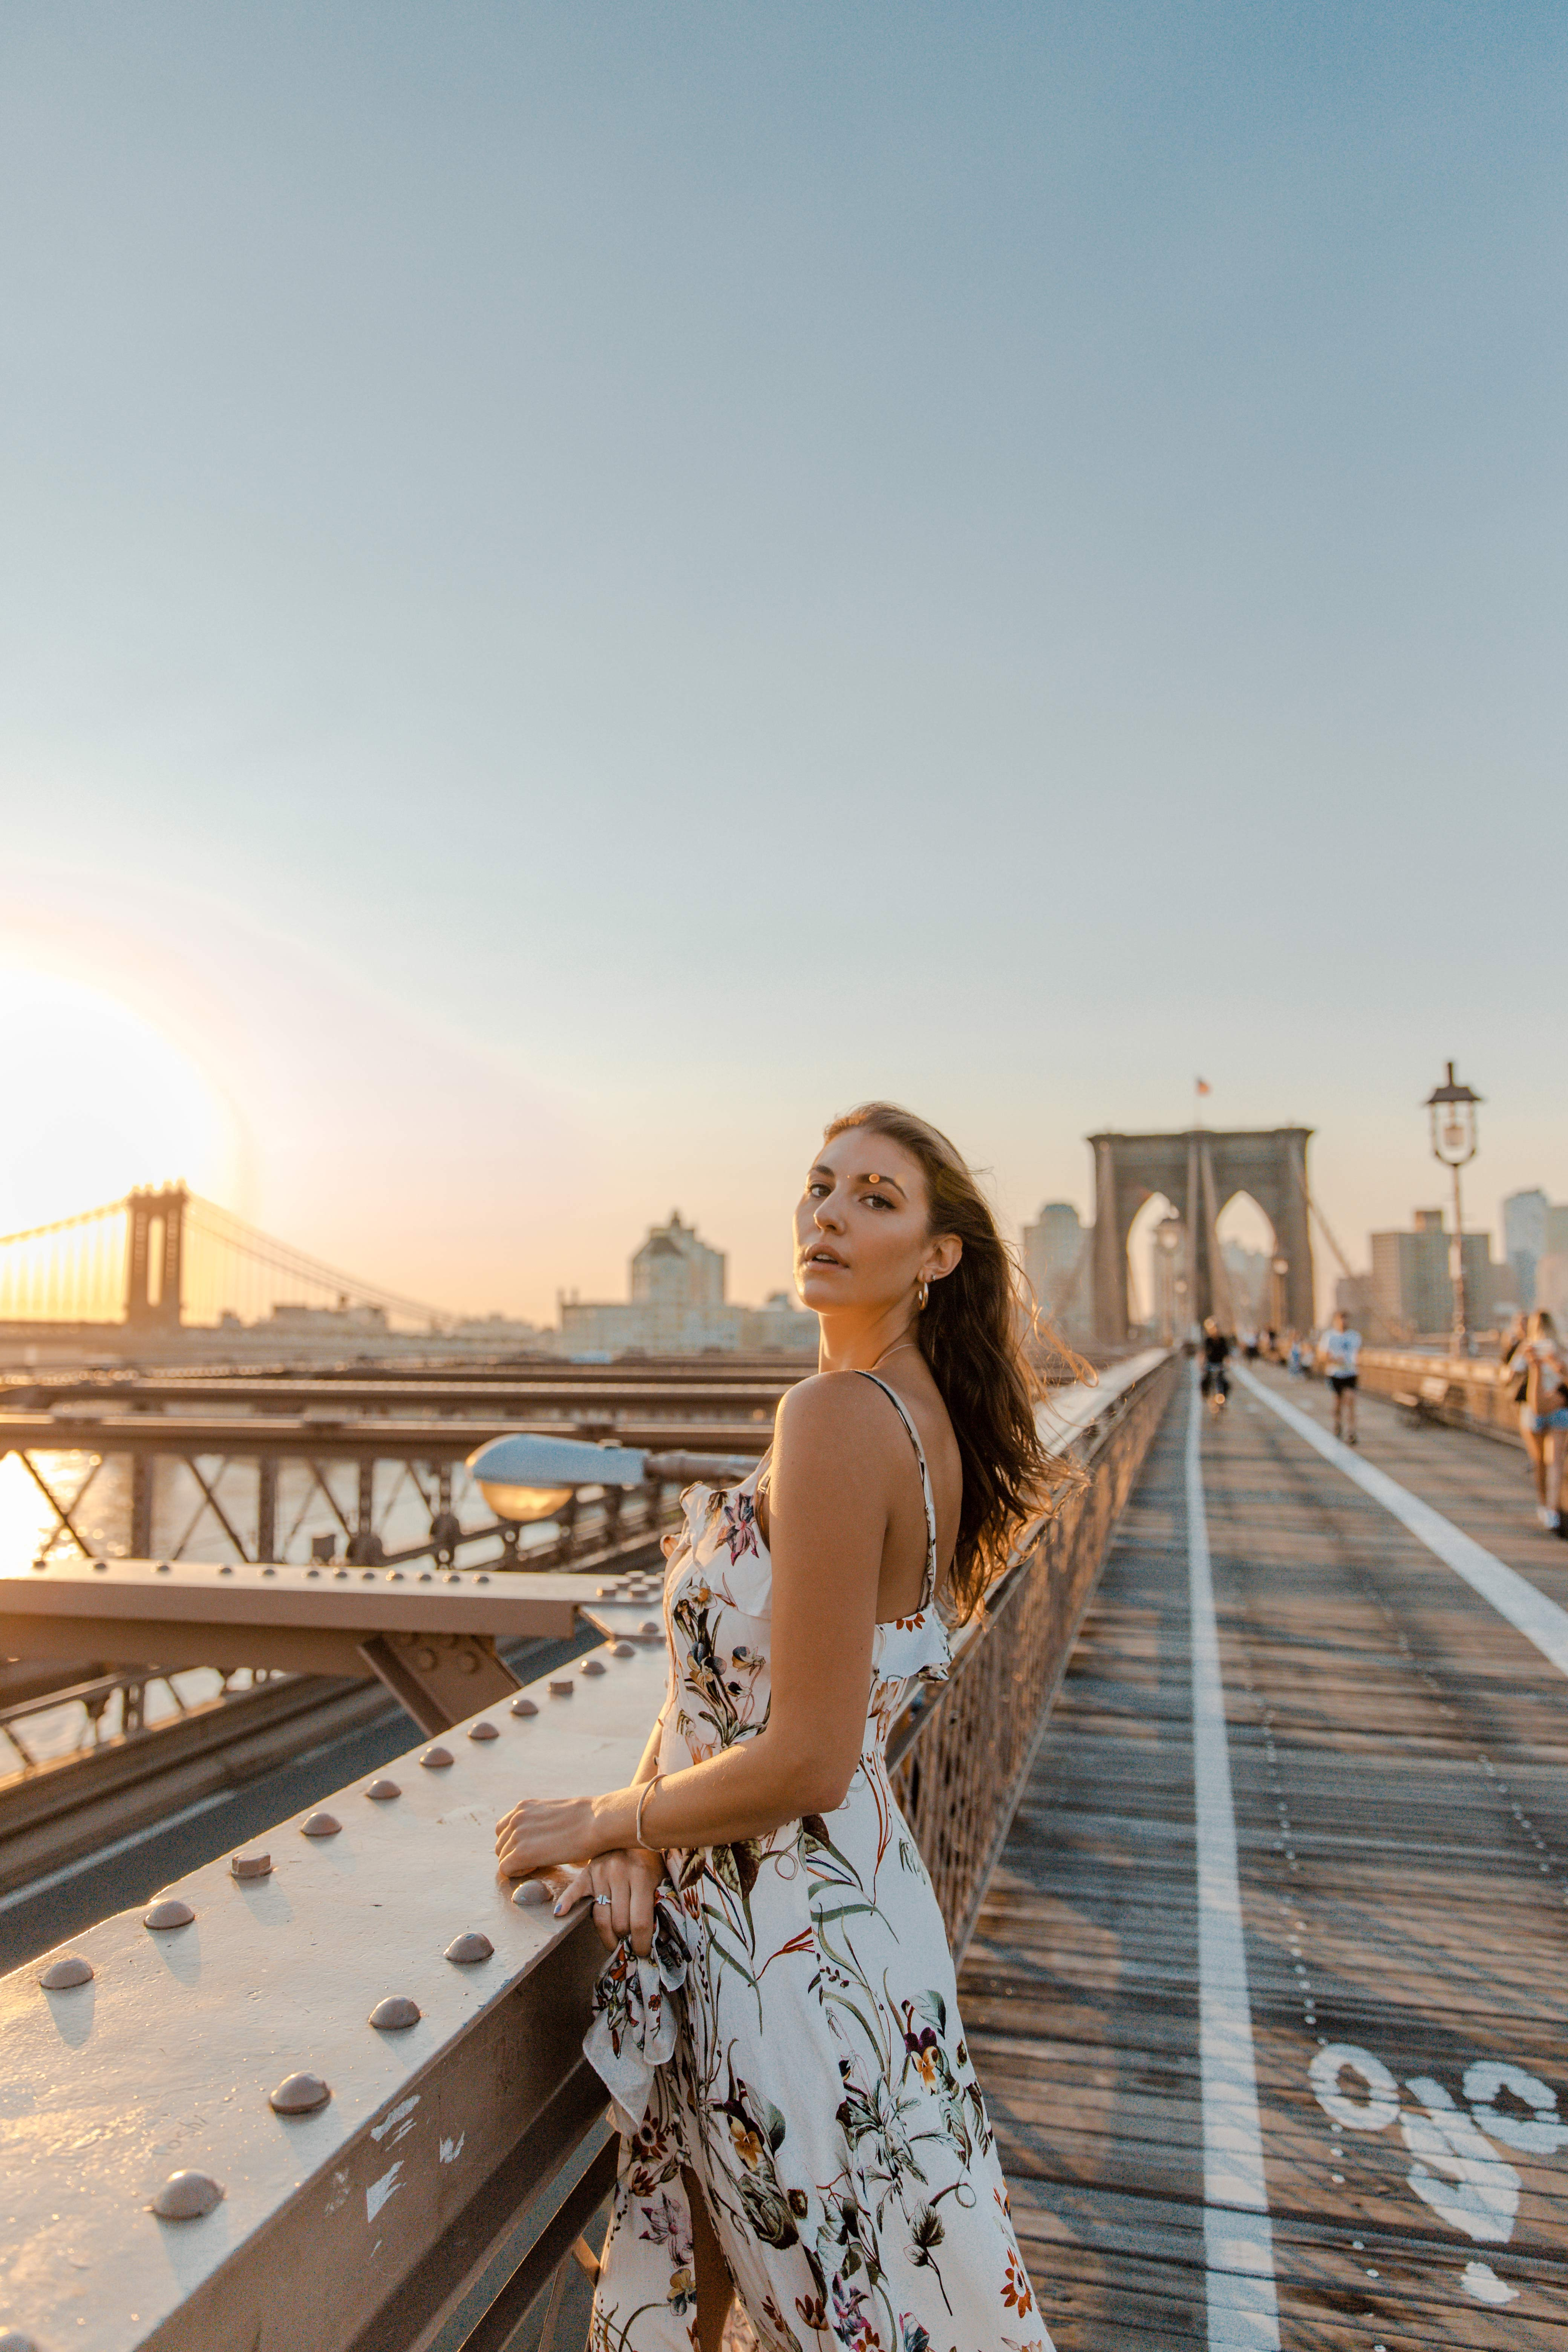 10 Iconic Things to do in NYC | New York City Travel Guide, best of NYC | Dana Berez Travel Guide Brooklyn Bridge Sunrise Instagram spots